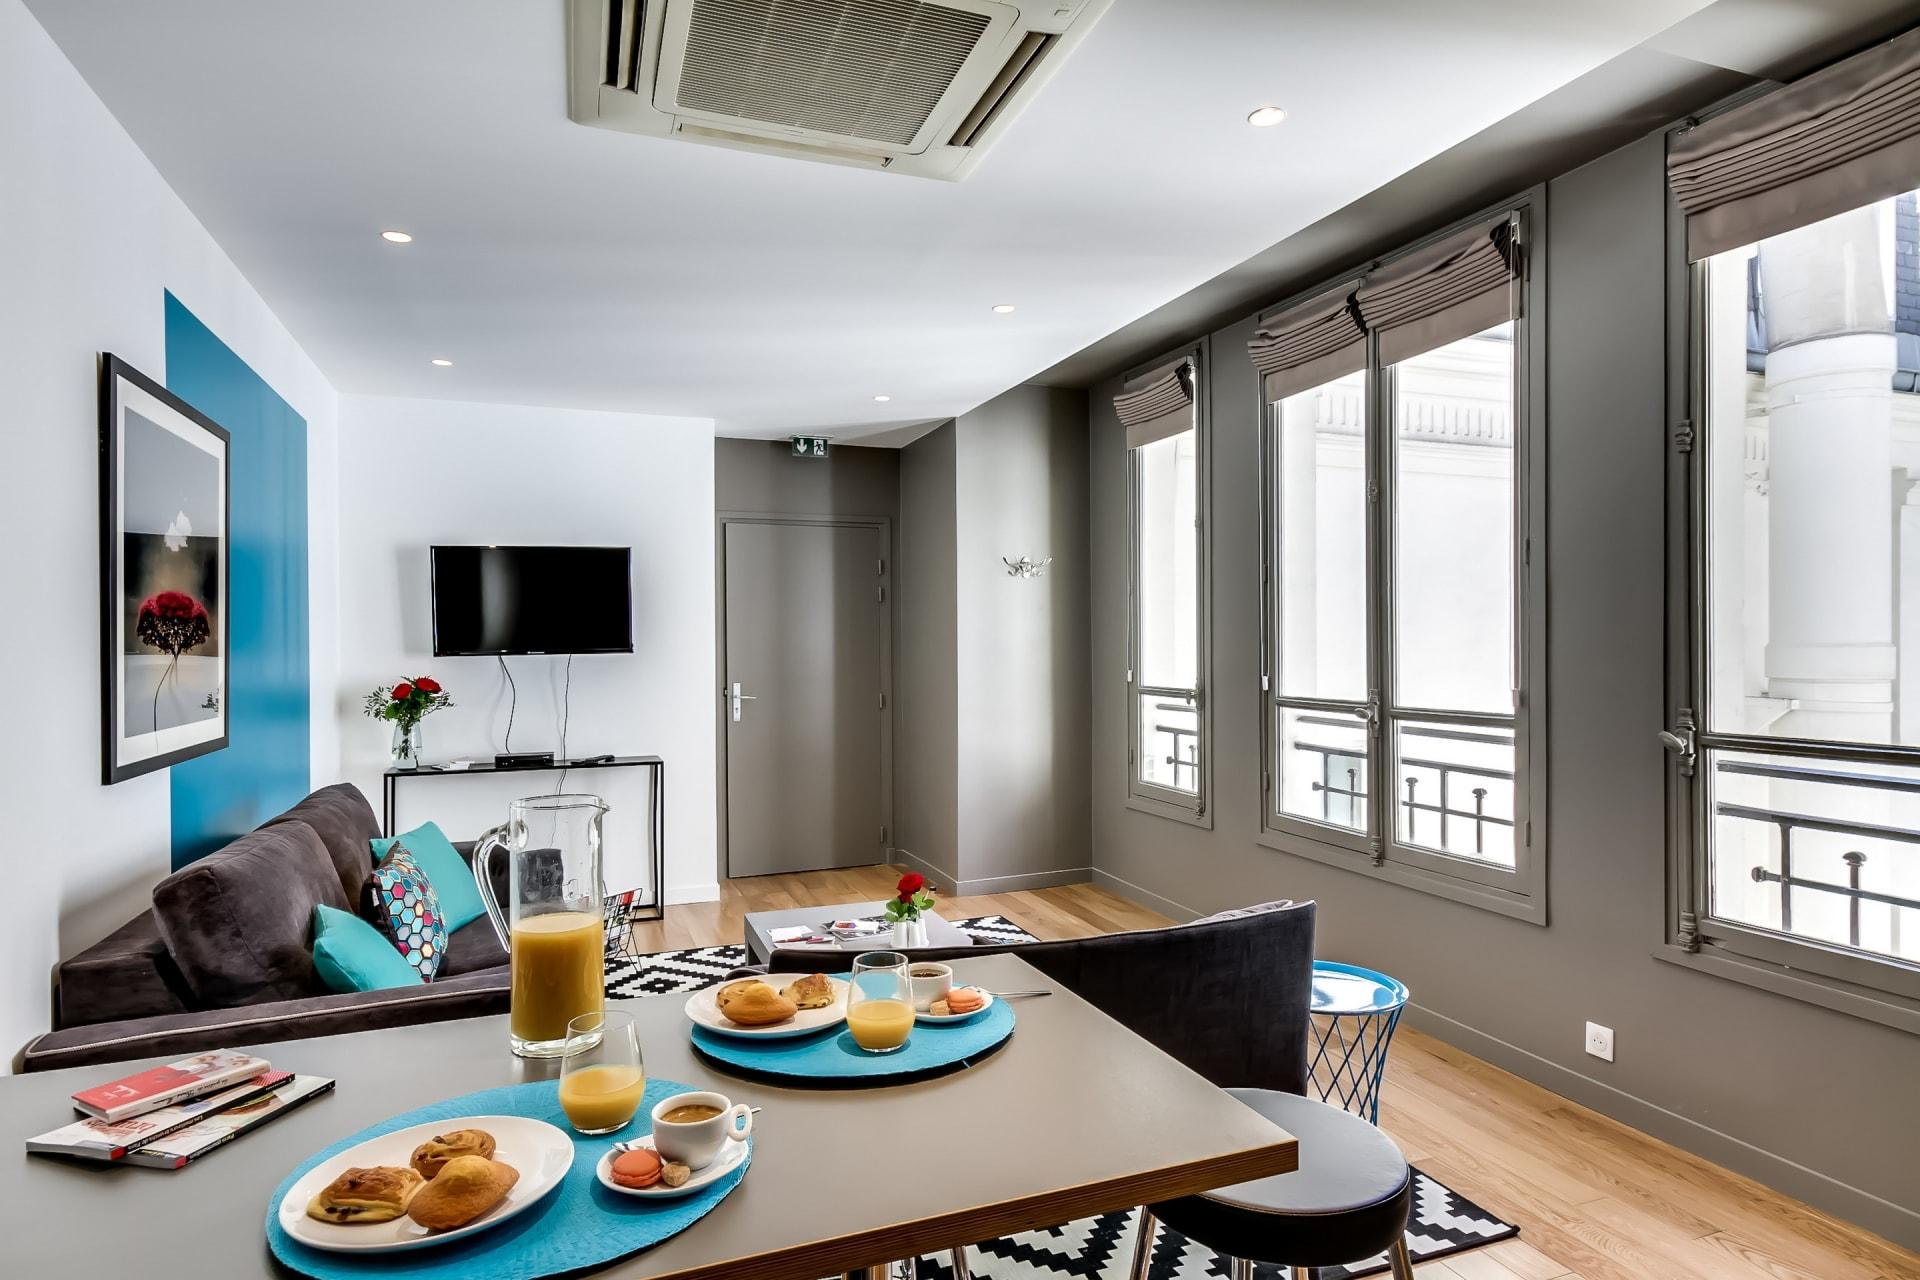 Property Image 2 - Two-bedroom Champs-Elysees Boulevard Apartment the Fashion Mecca of Paris